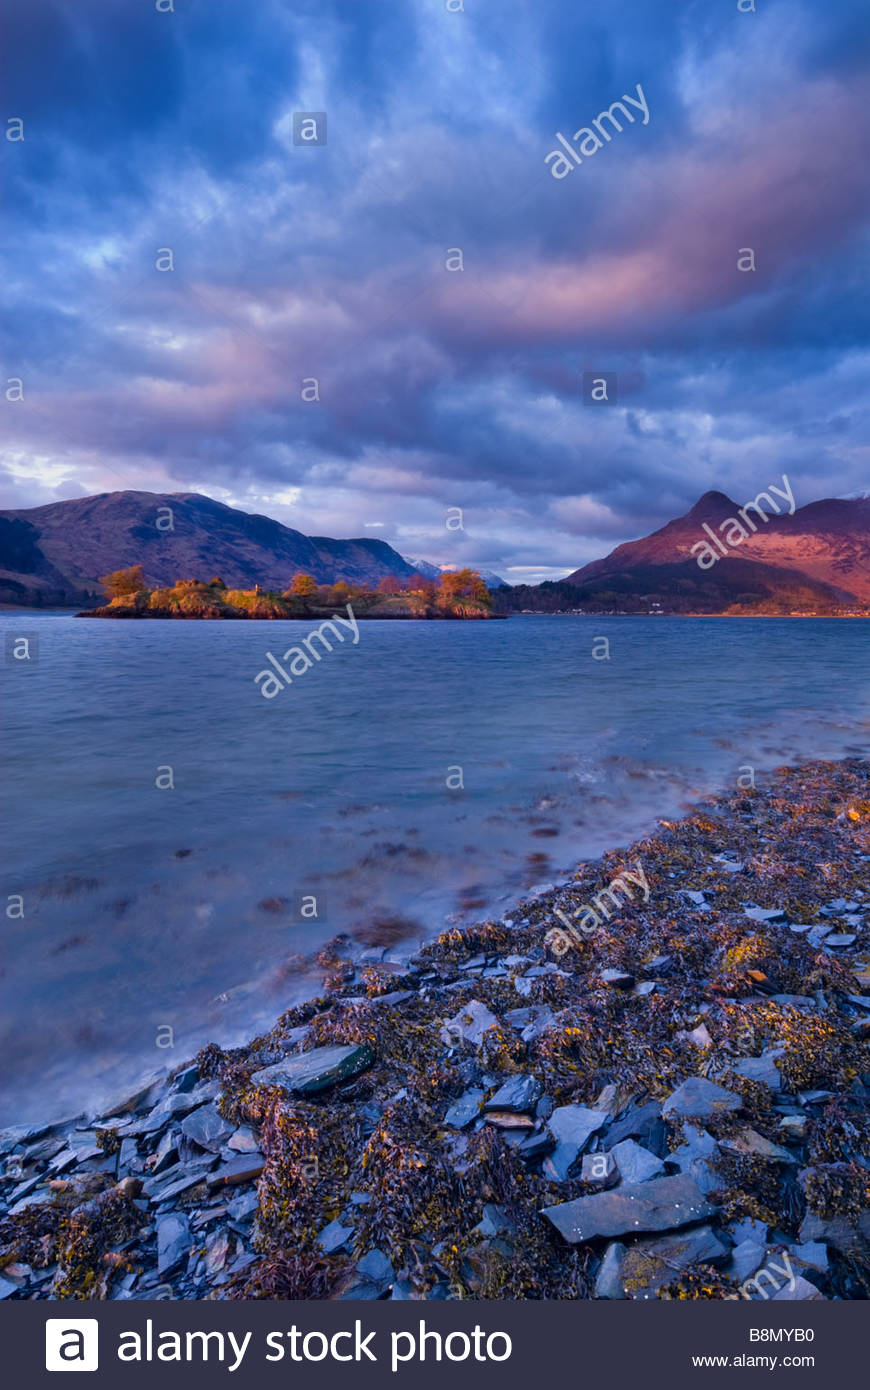 Loch Leven and the Pap of Glencoe, Scottish Highlands, Scotland, UK. - Stock Image